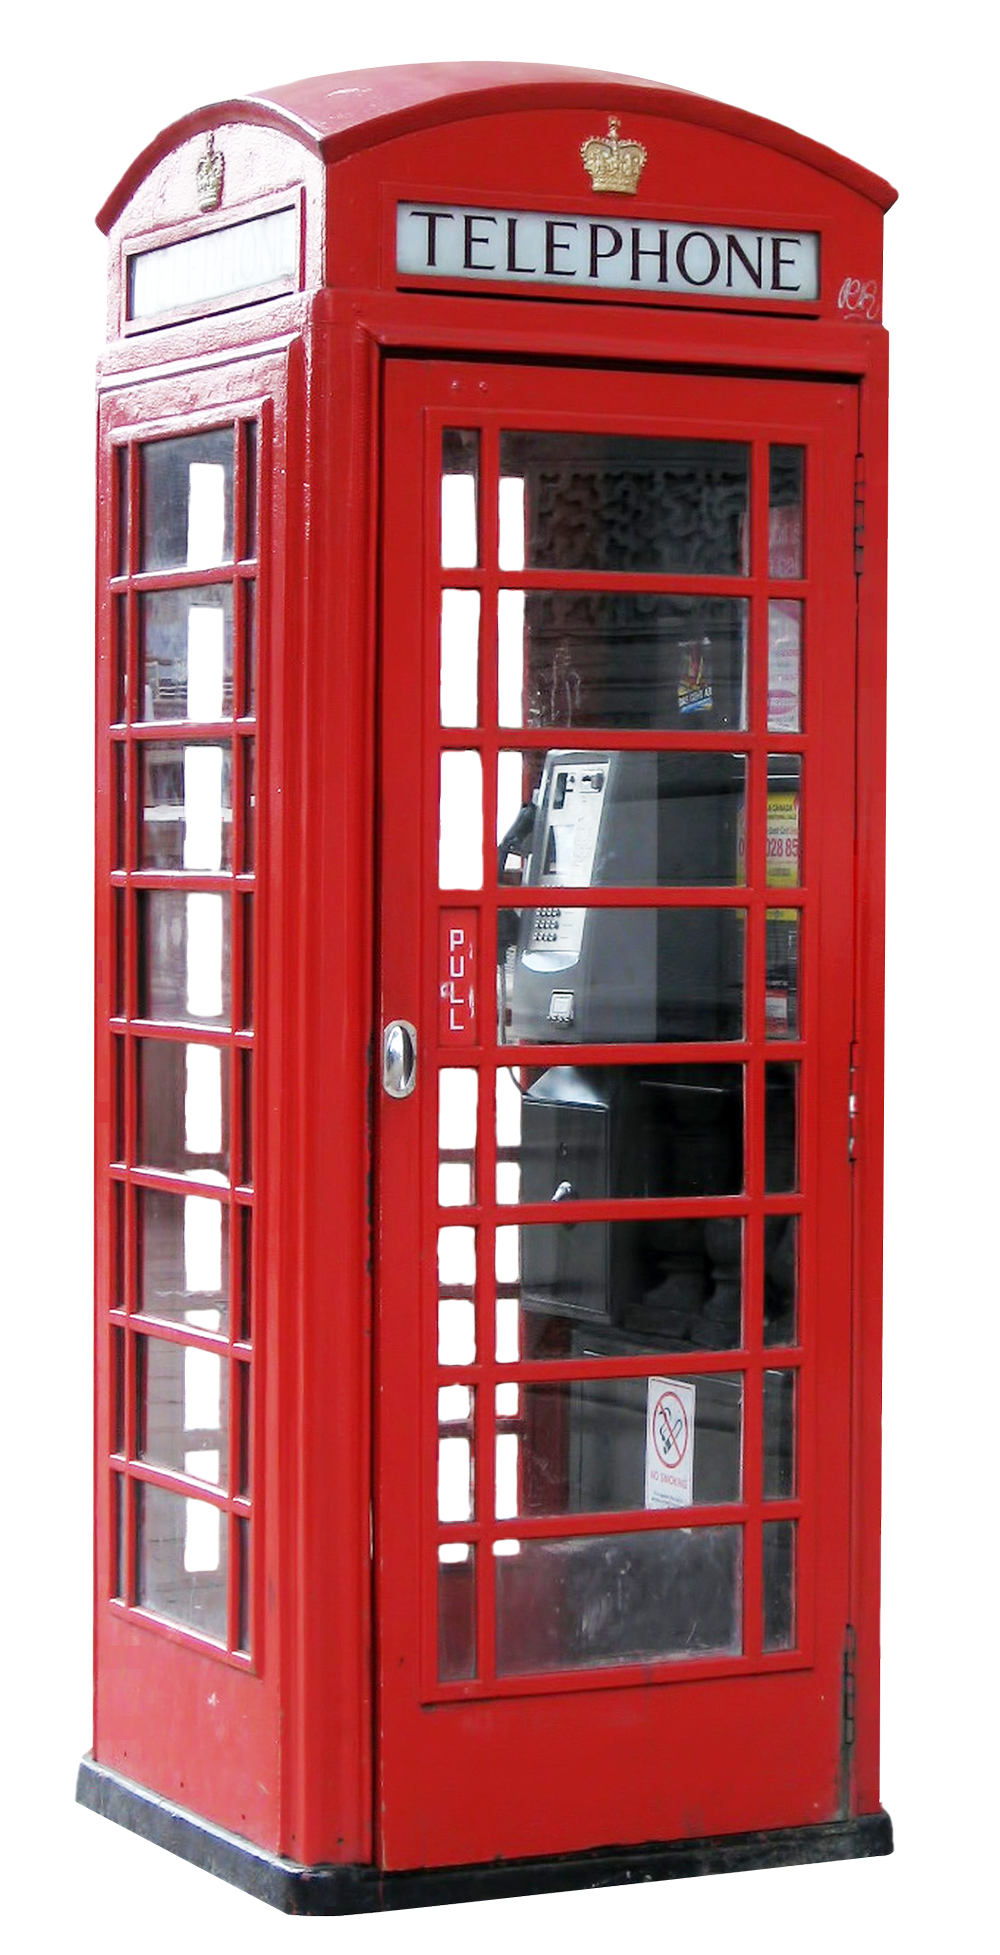 London clipart phone booth british. Telephone png image purepng